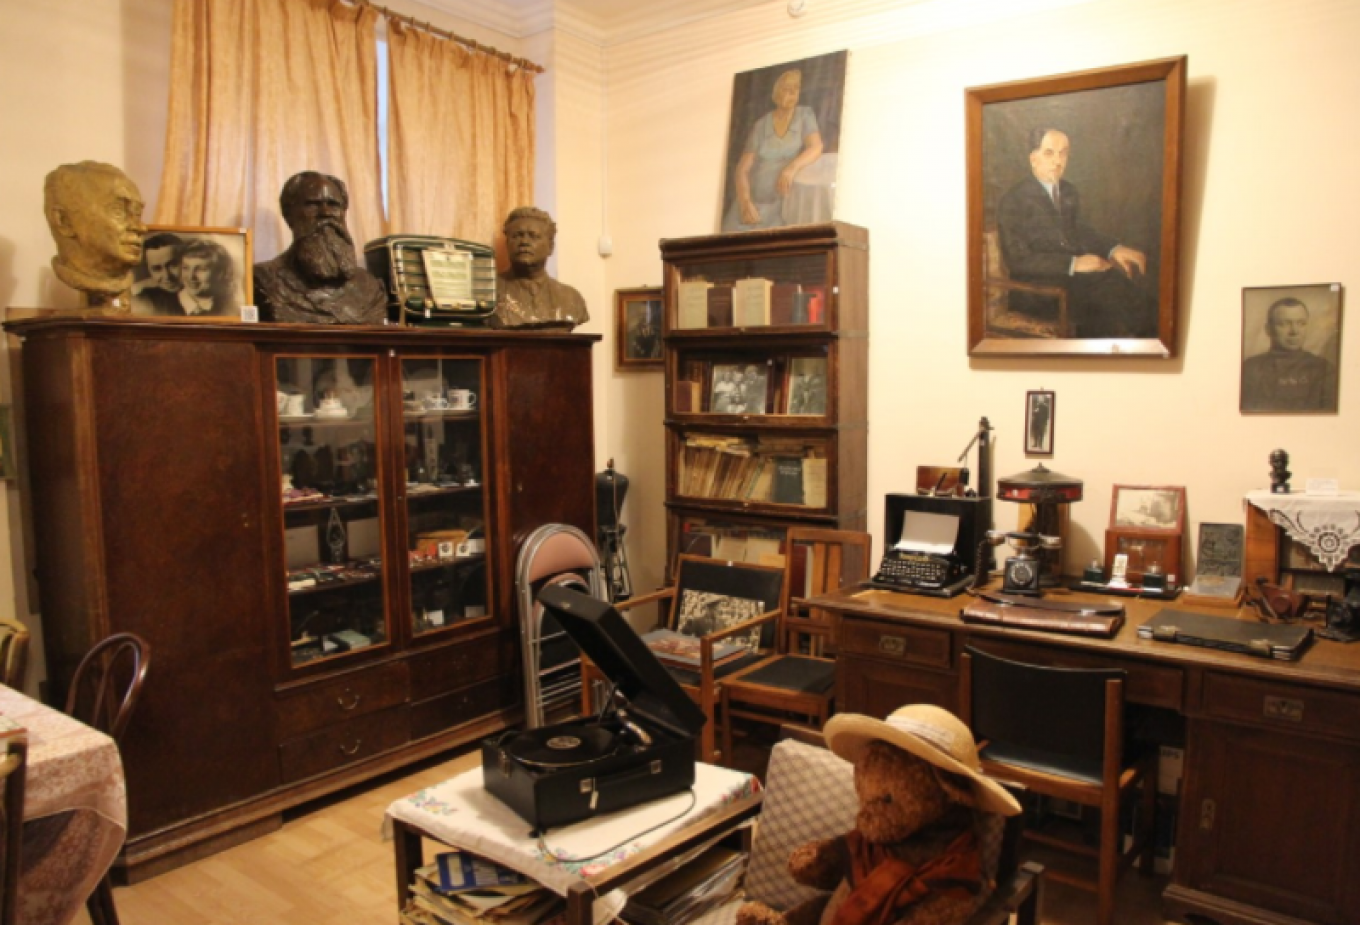 The small museum in the House on the Embankment brings back to life the tragic fates of its residents. Harrison King